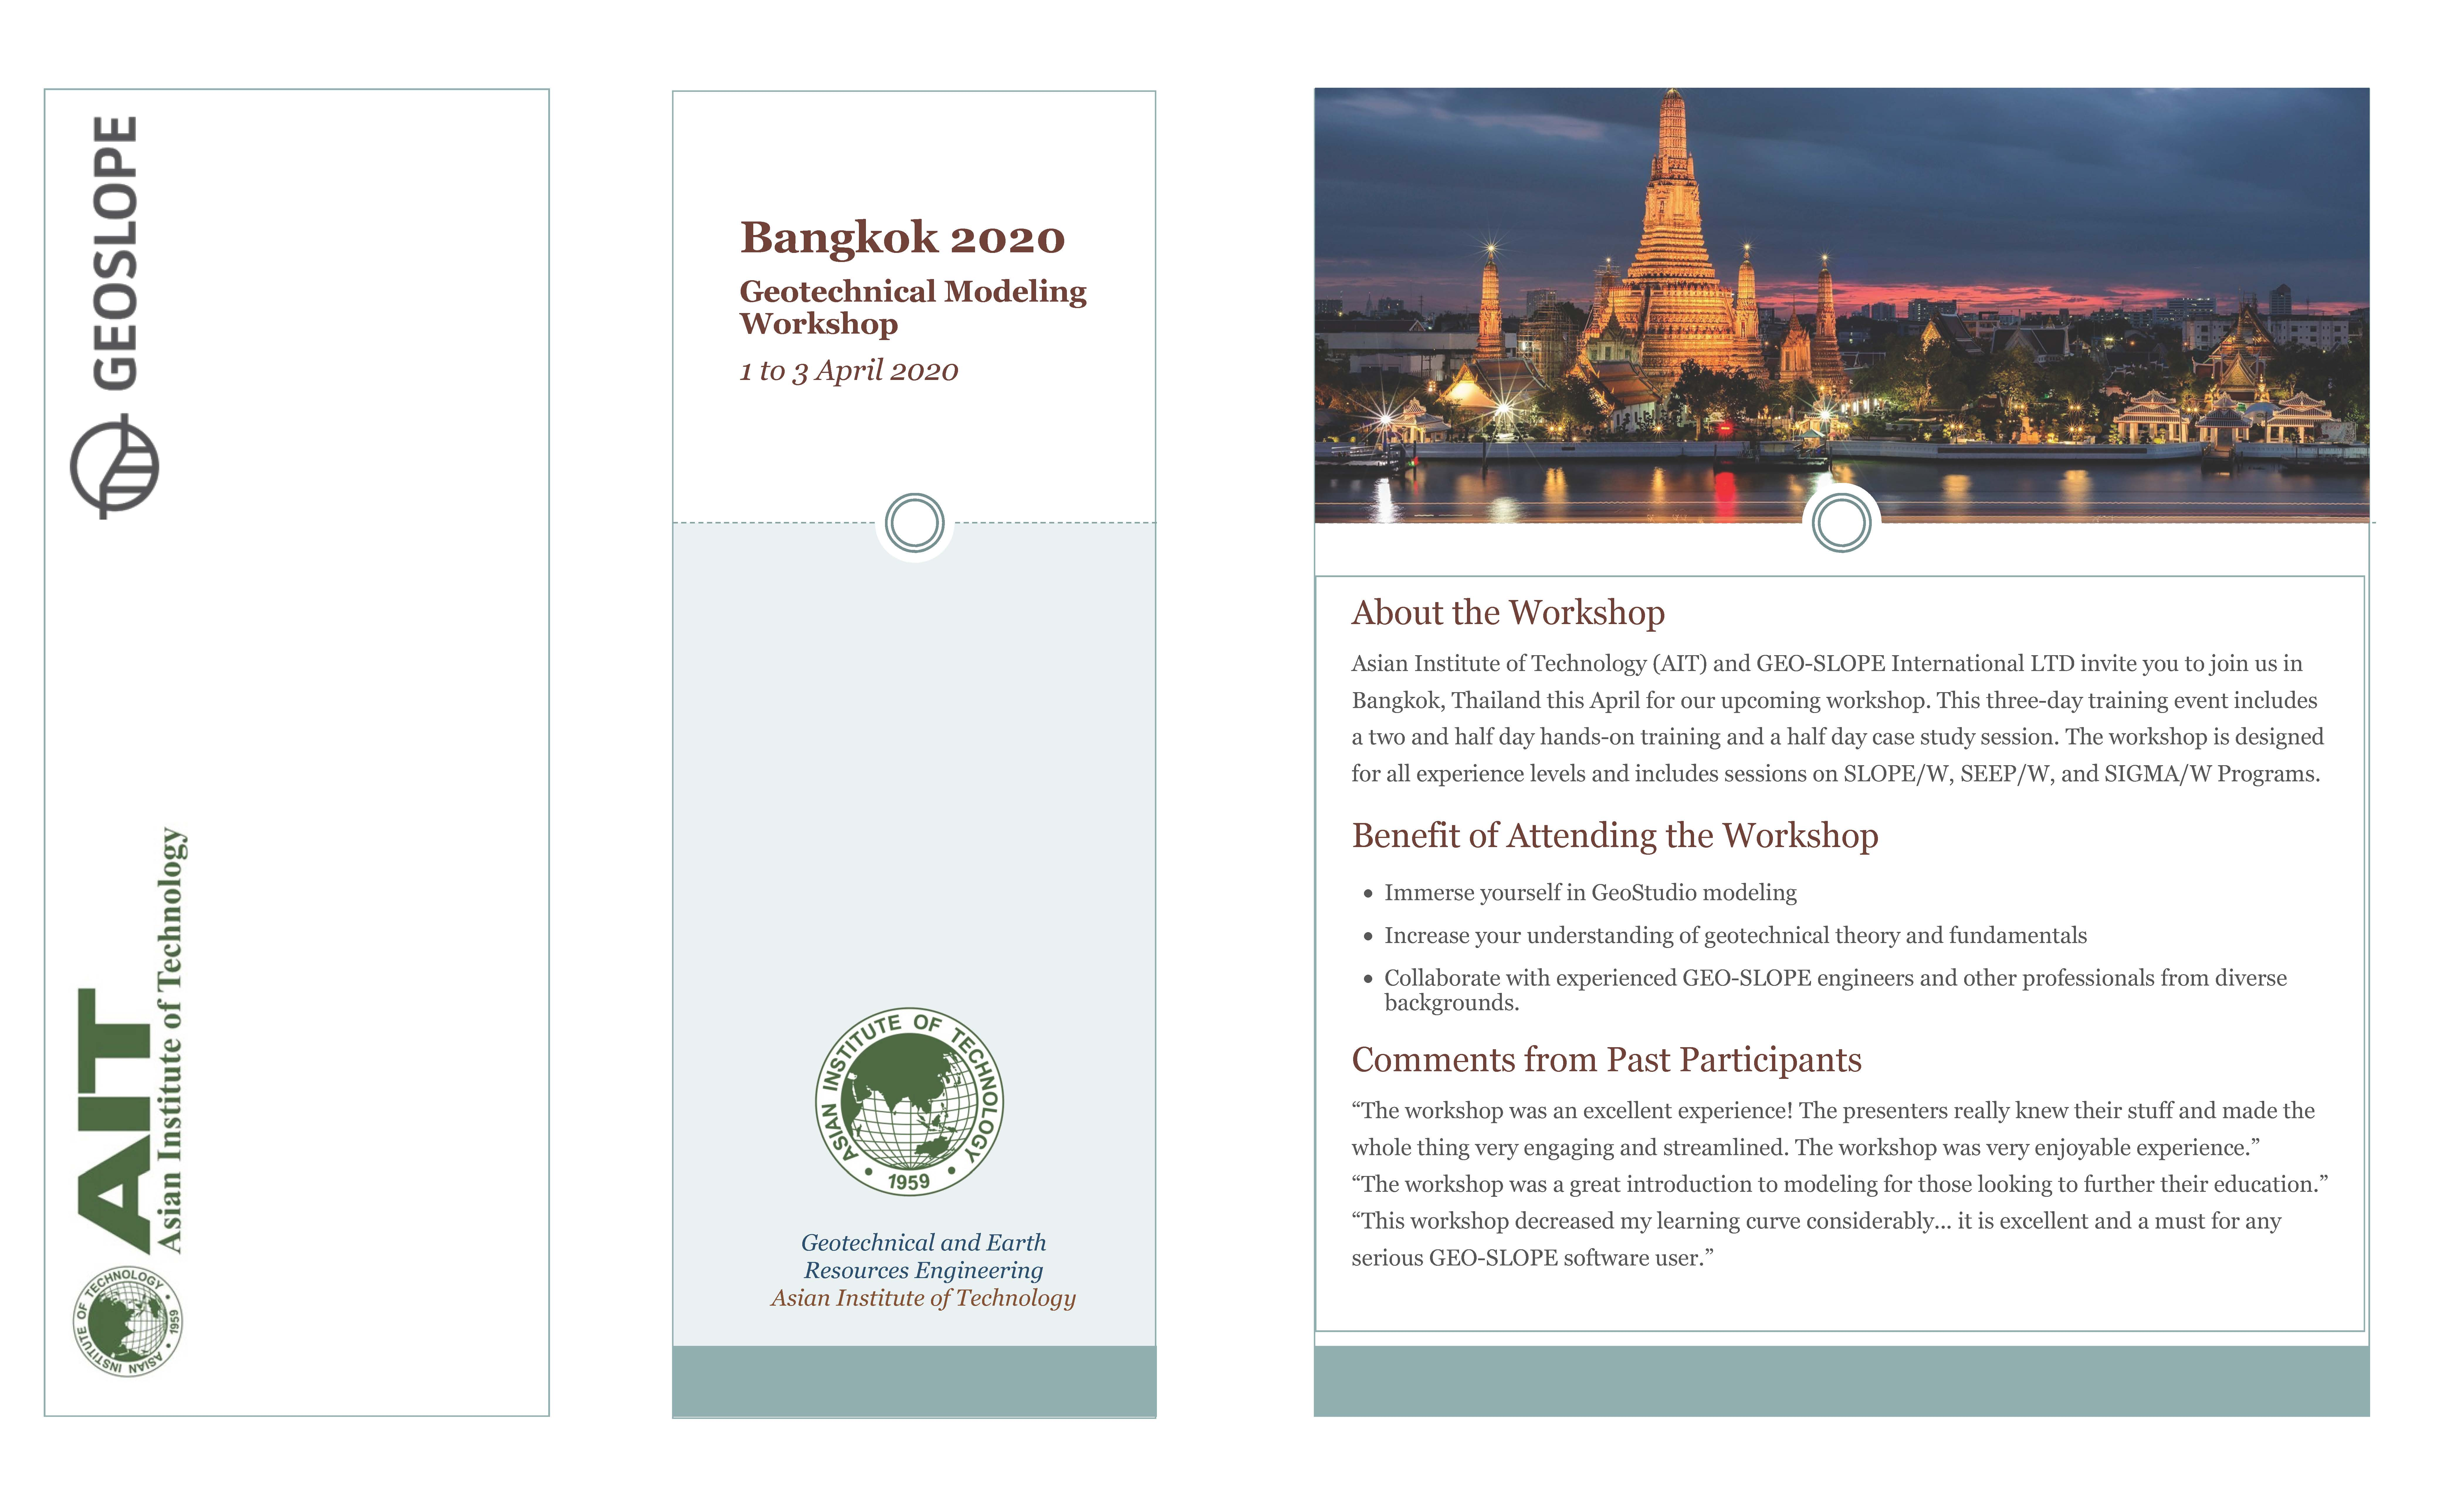 http://seags.ait.asia/wordpress/wp-content/uploads/8609_AIT-GeoStudio-Workshop-Brochure-2020_Page_1.jpg